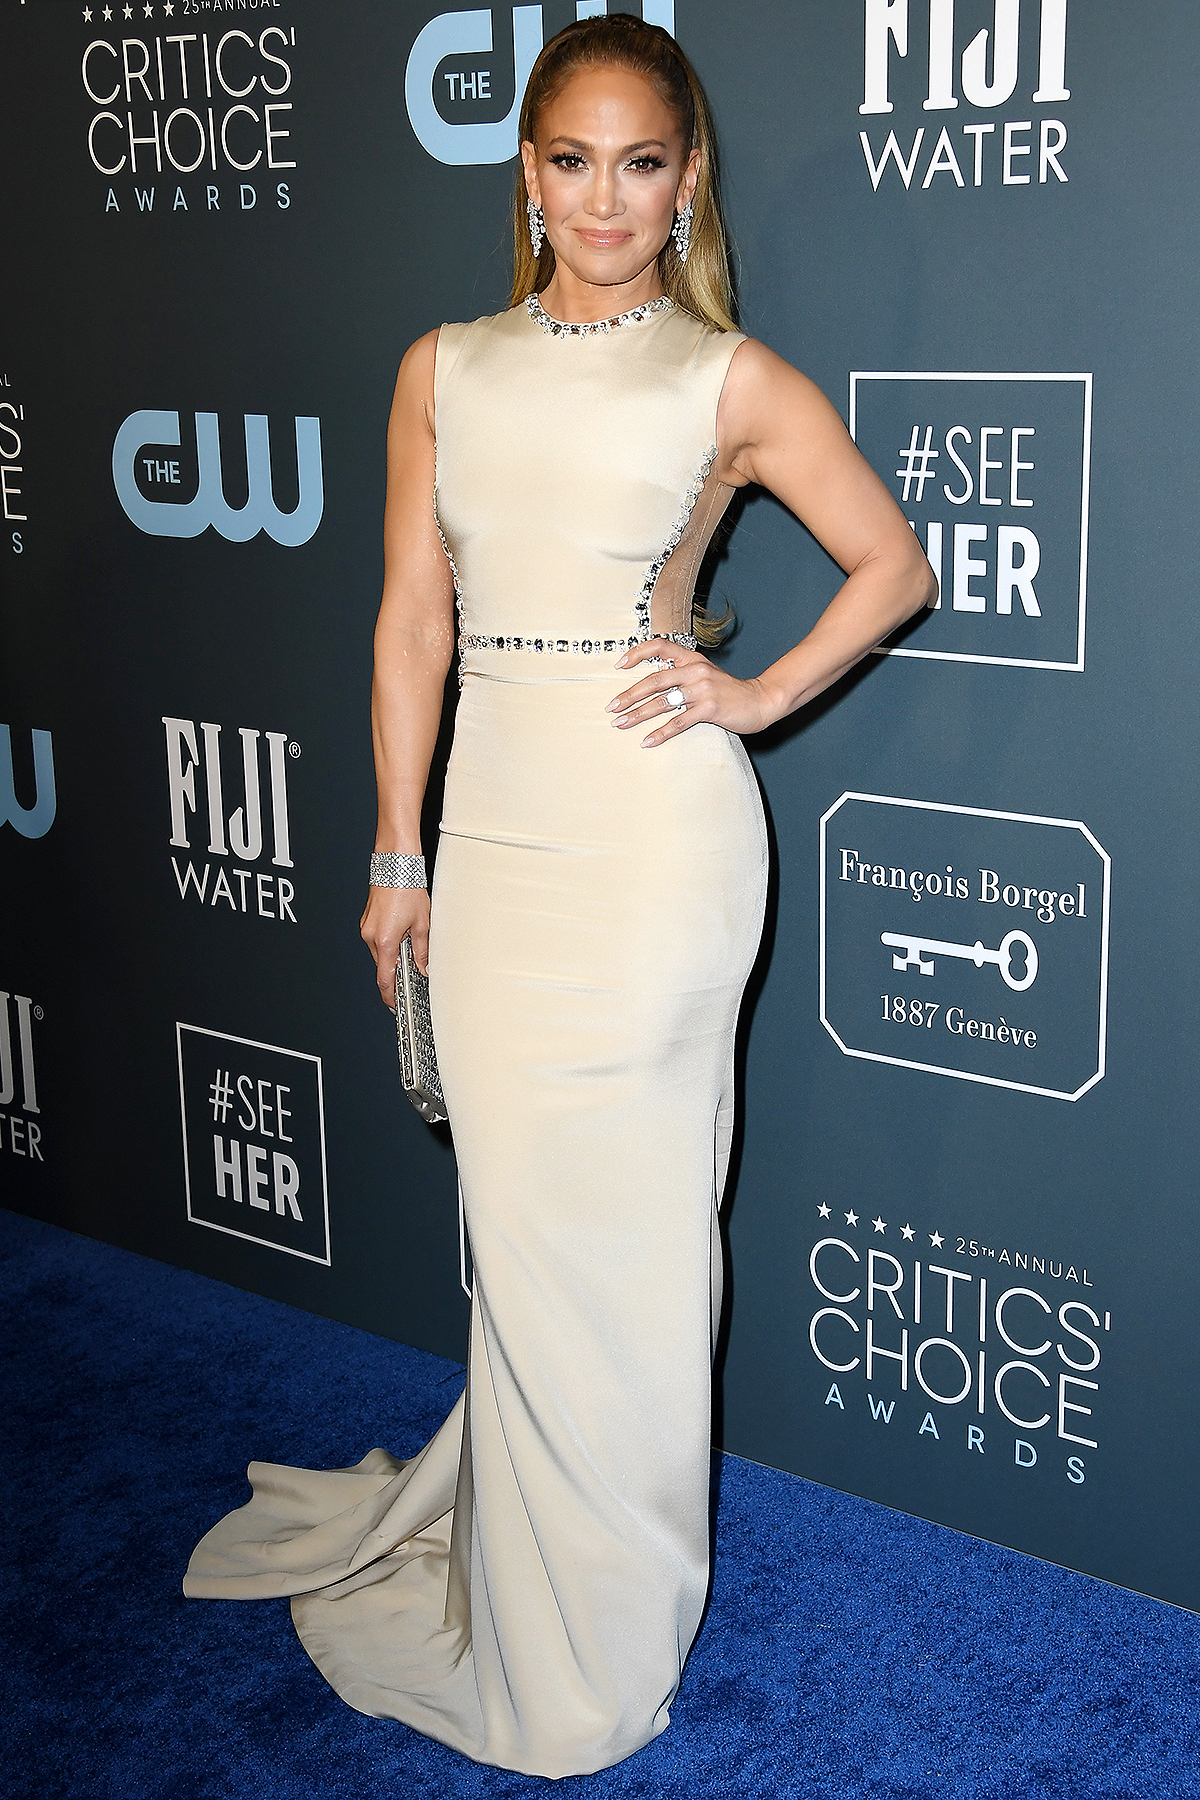 Jennifer Lopez arrives at the 25th Annual Critics' Choice Awards at Barker Hangar on January 12, 2020